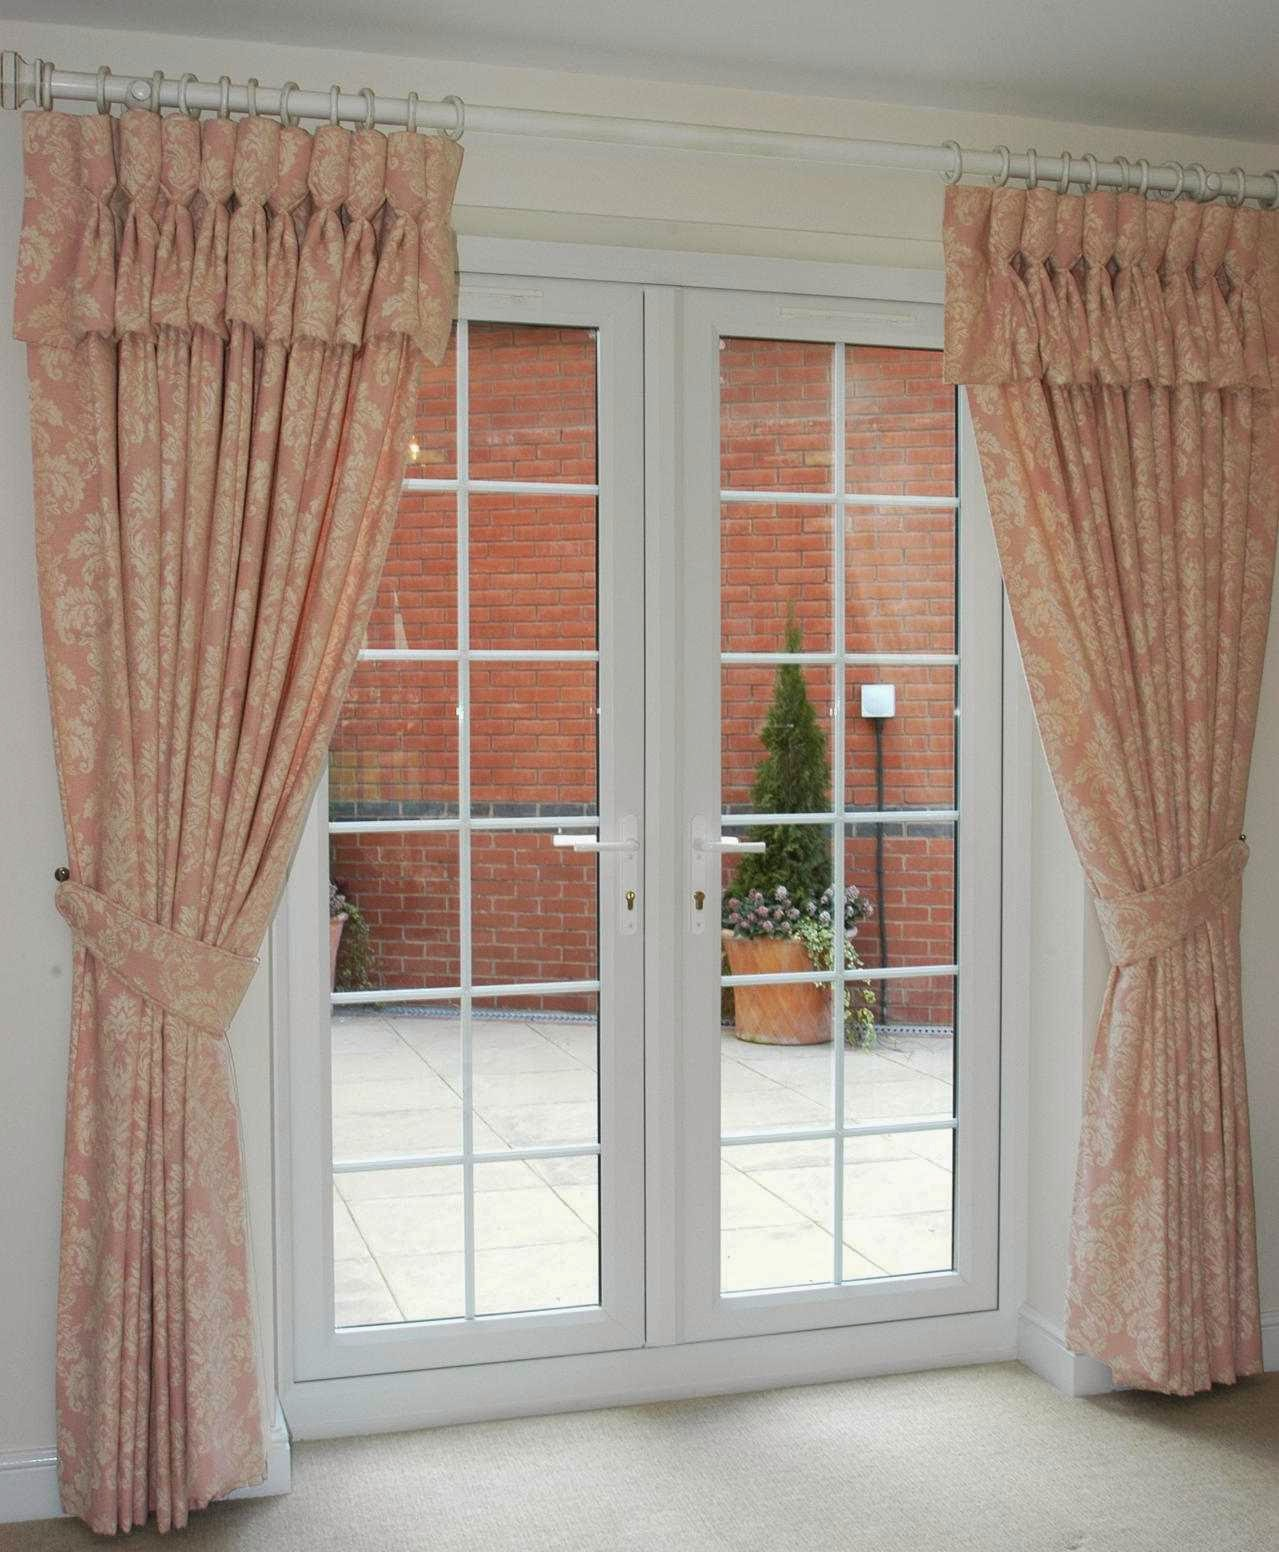 Window treatments for french doors home design ideas and for French door designs